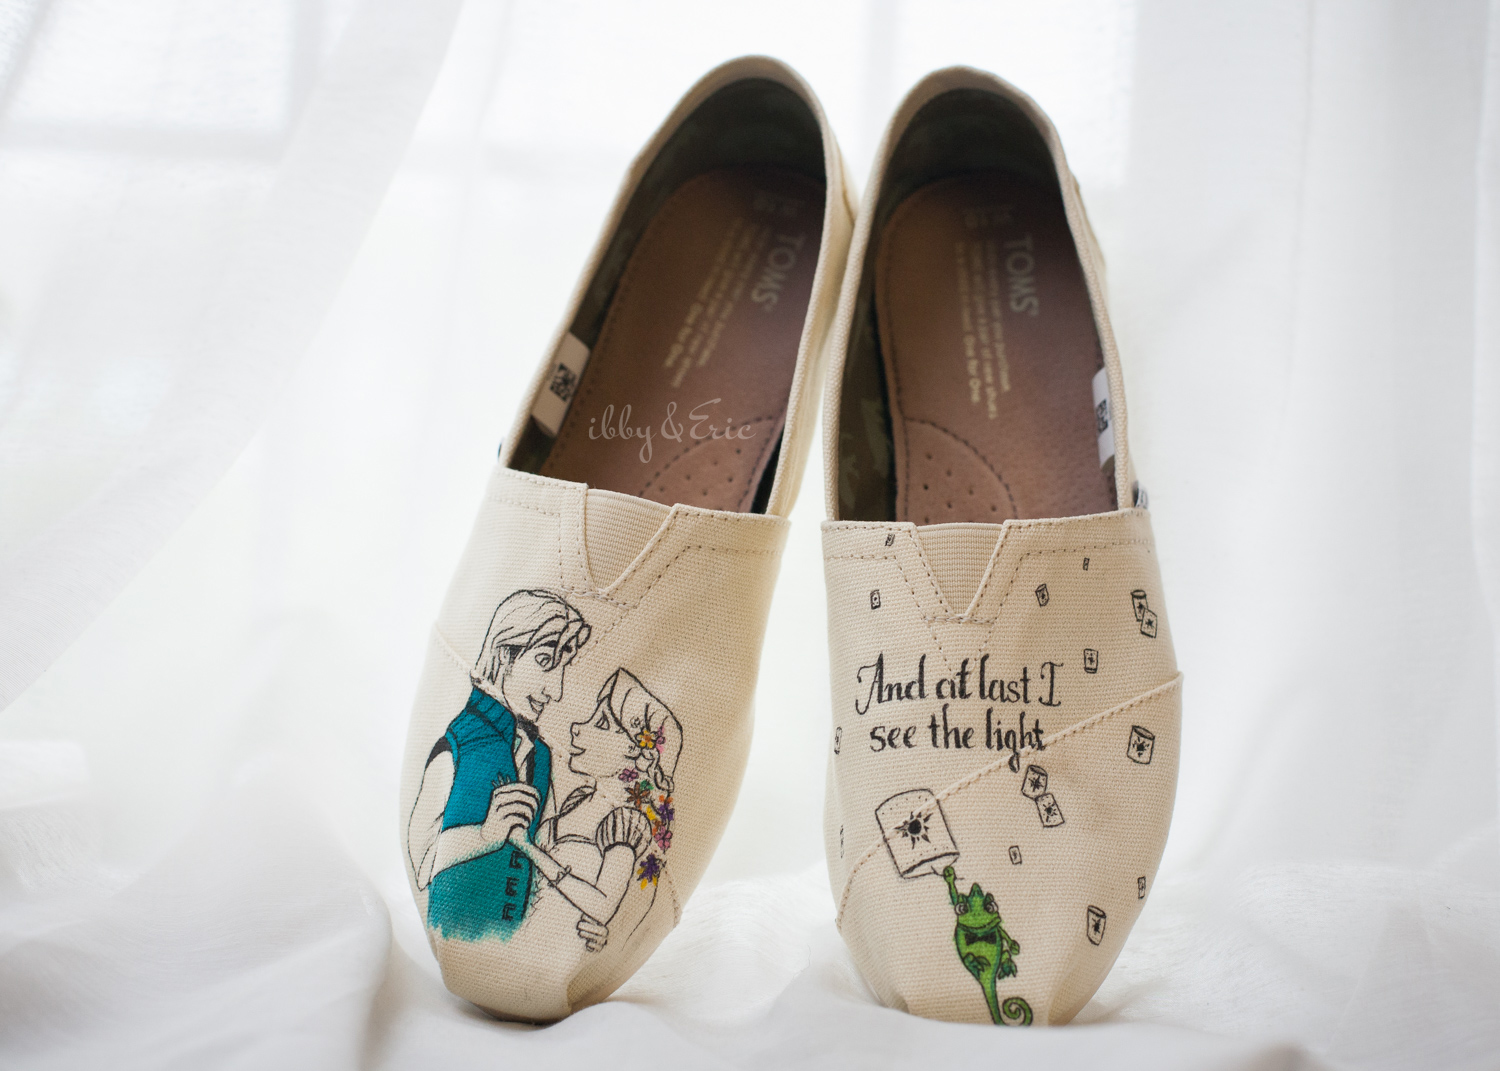 Custom TOMS wedding shoes with characters and a love quote from the movie Tangled.